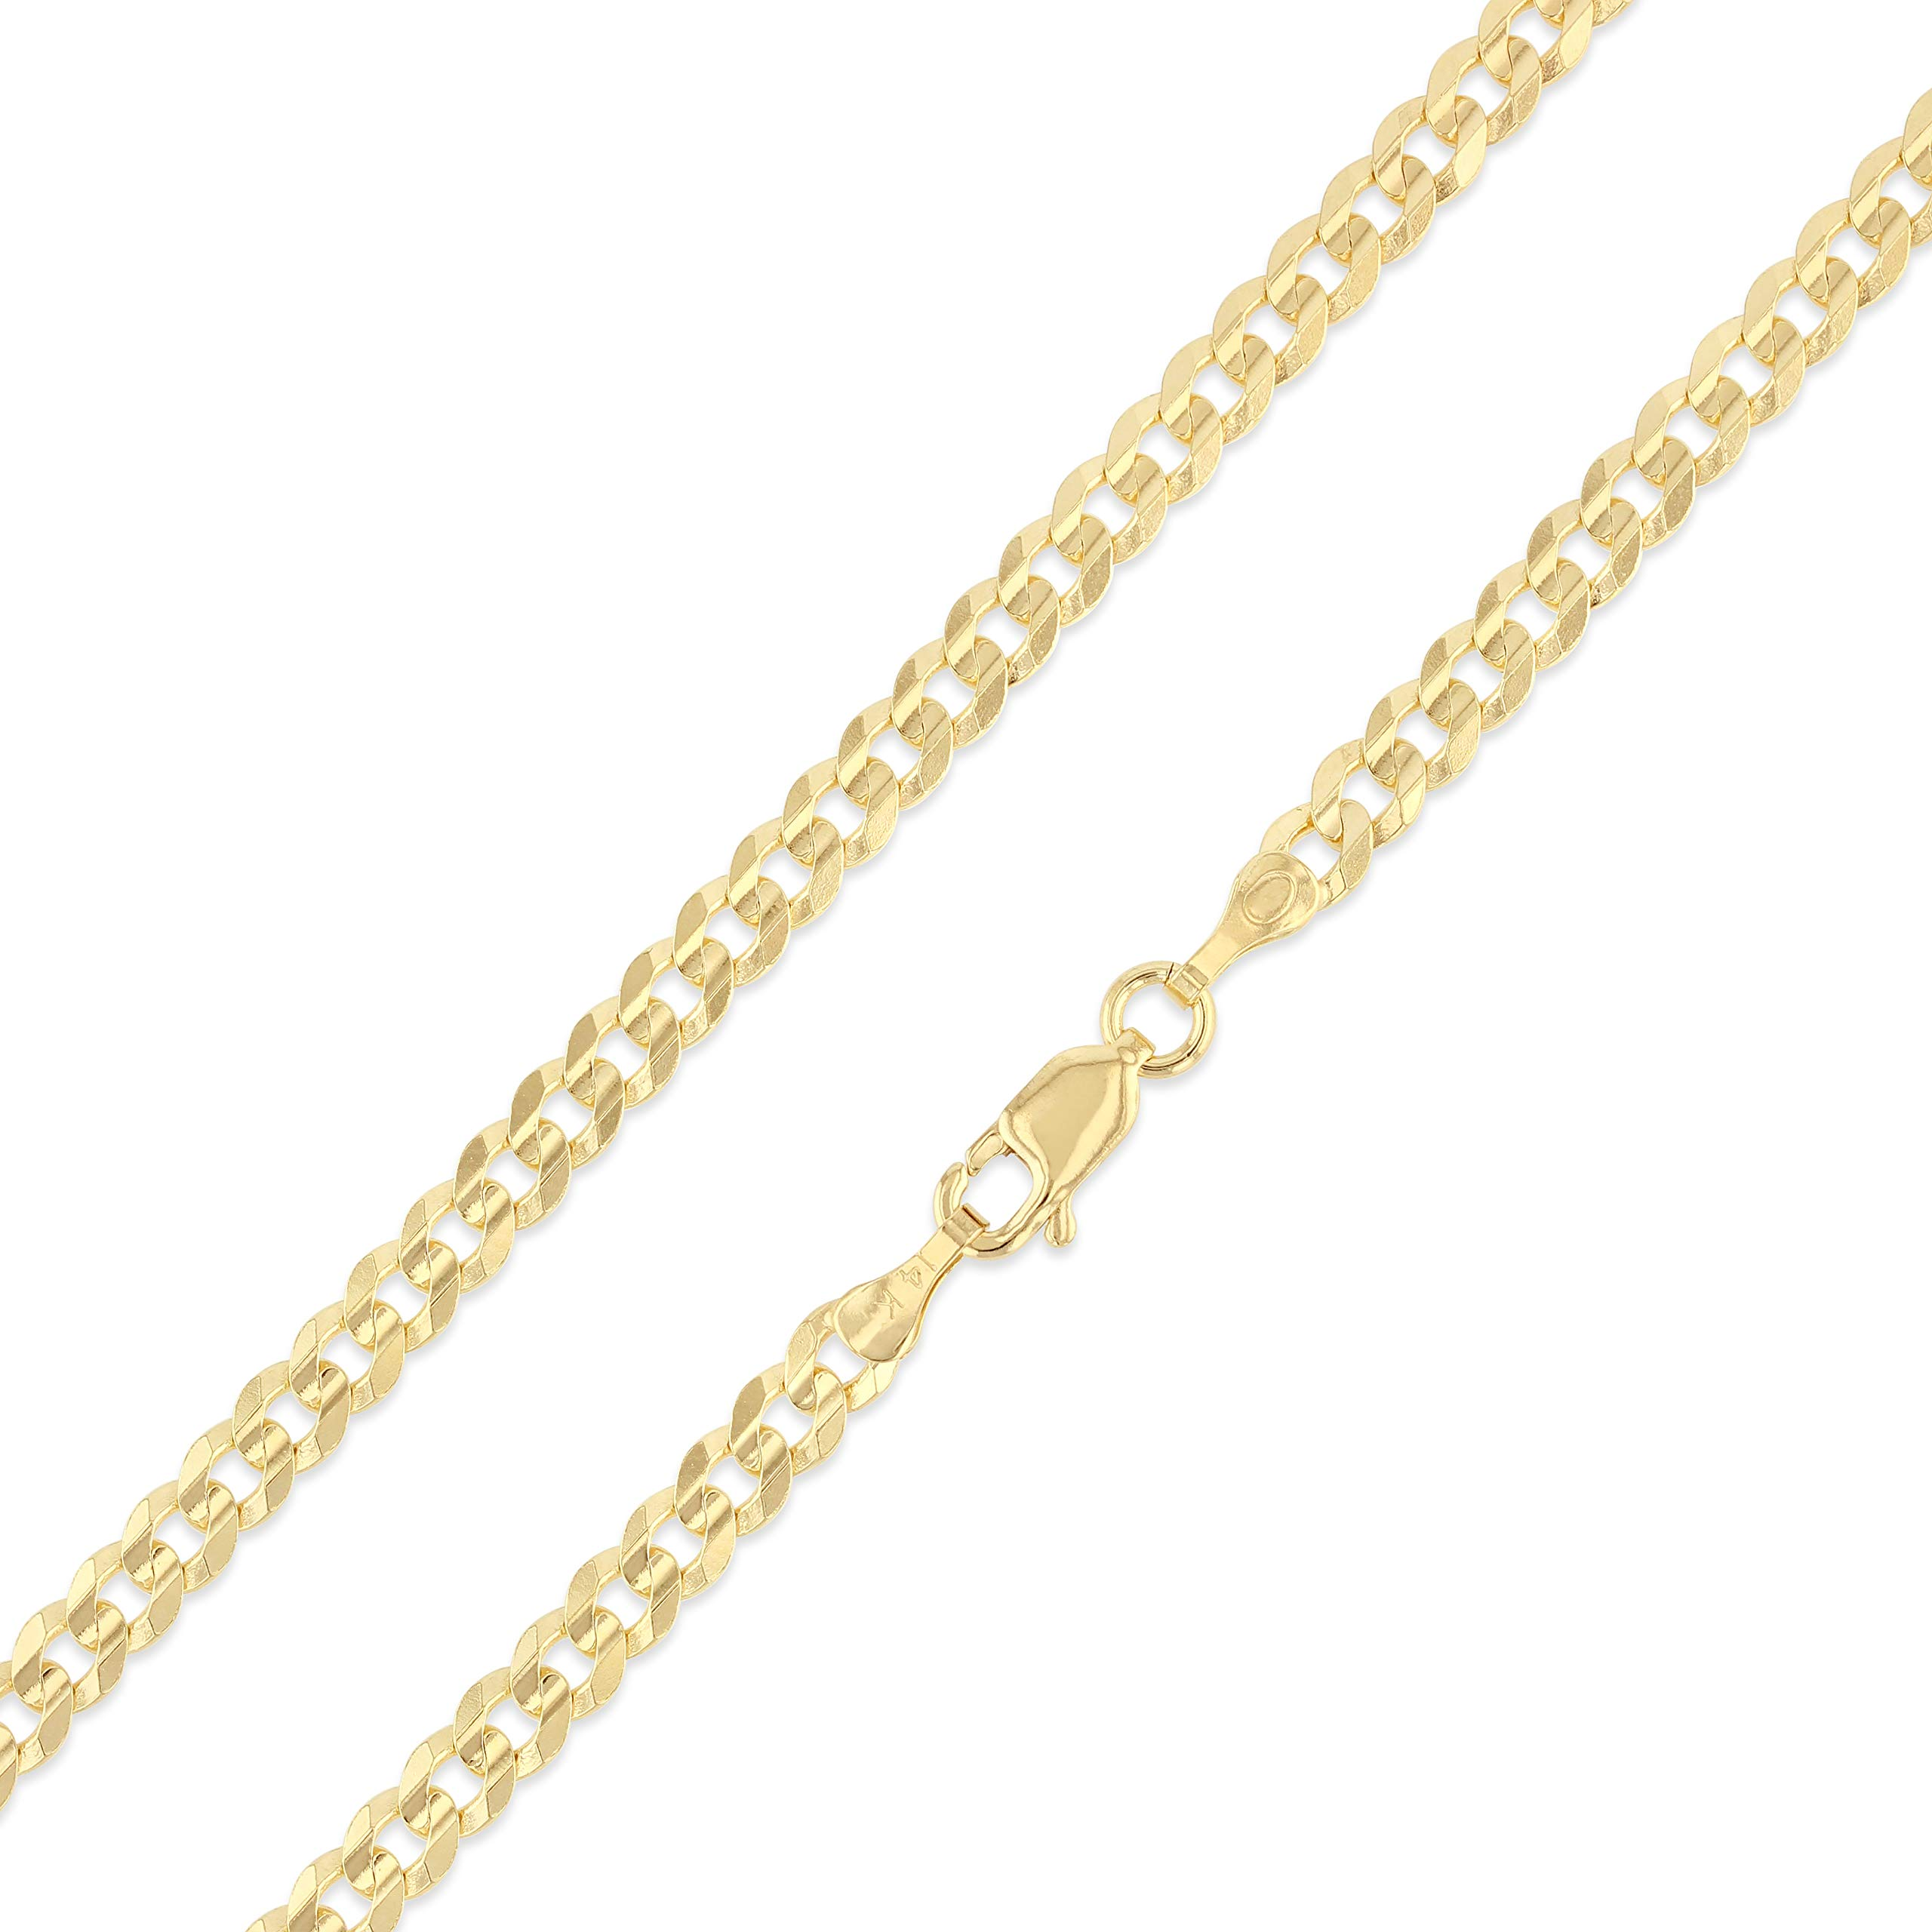 Ioka - 14K Yellow Solid Gold 4mm Cuban Concave Chain Necklace with Lobster Clasp - 20''